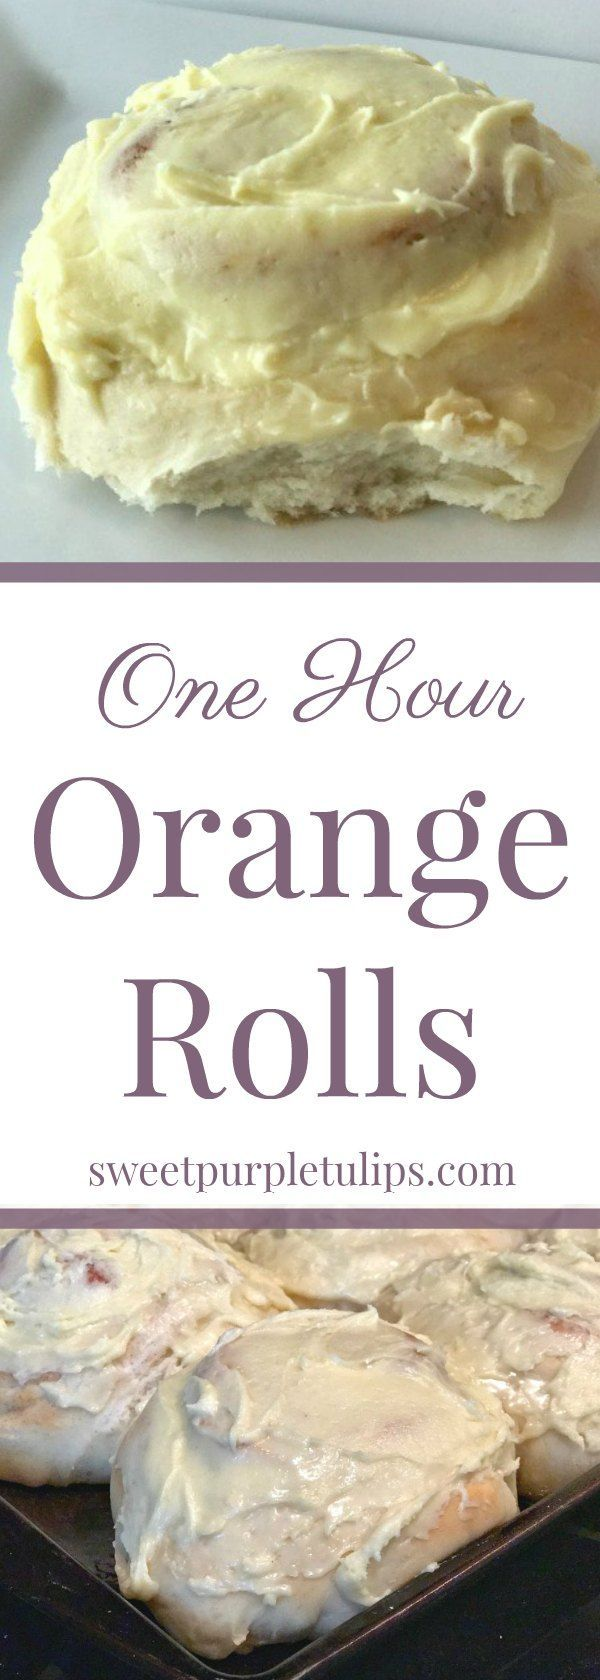 Looking for an orange roll recipe that is quick and easy? This recipe only takes one hour for soft, delicious, fresh baked orange rolls.